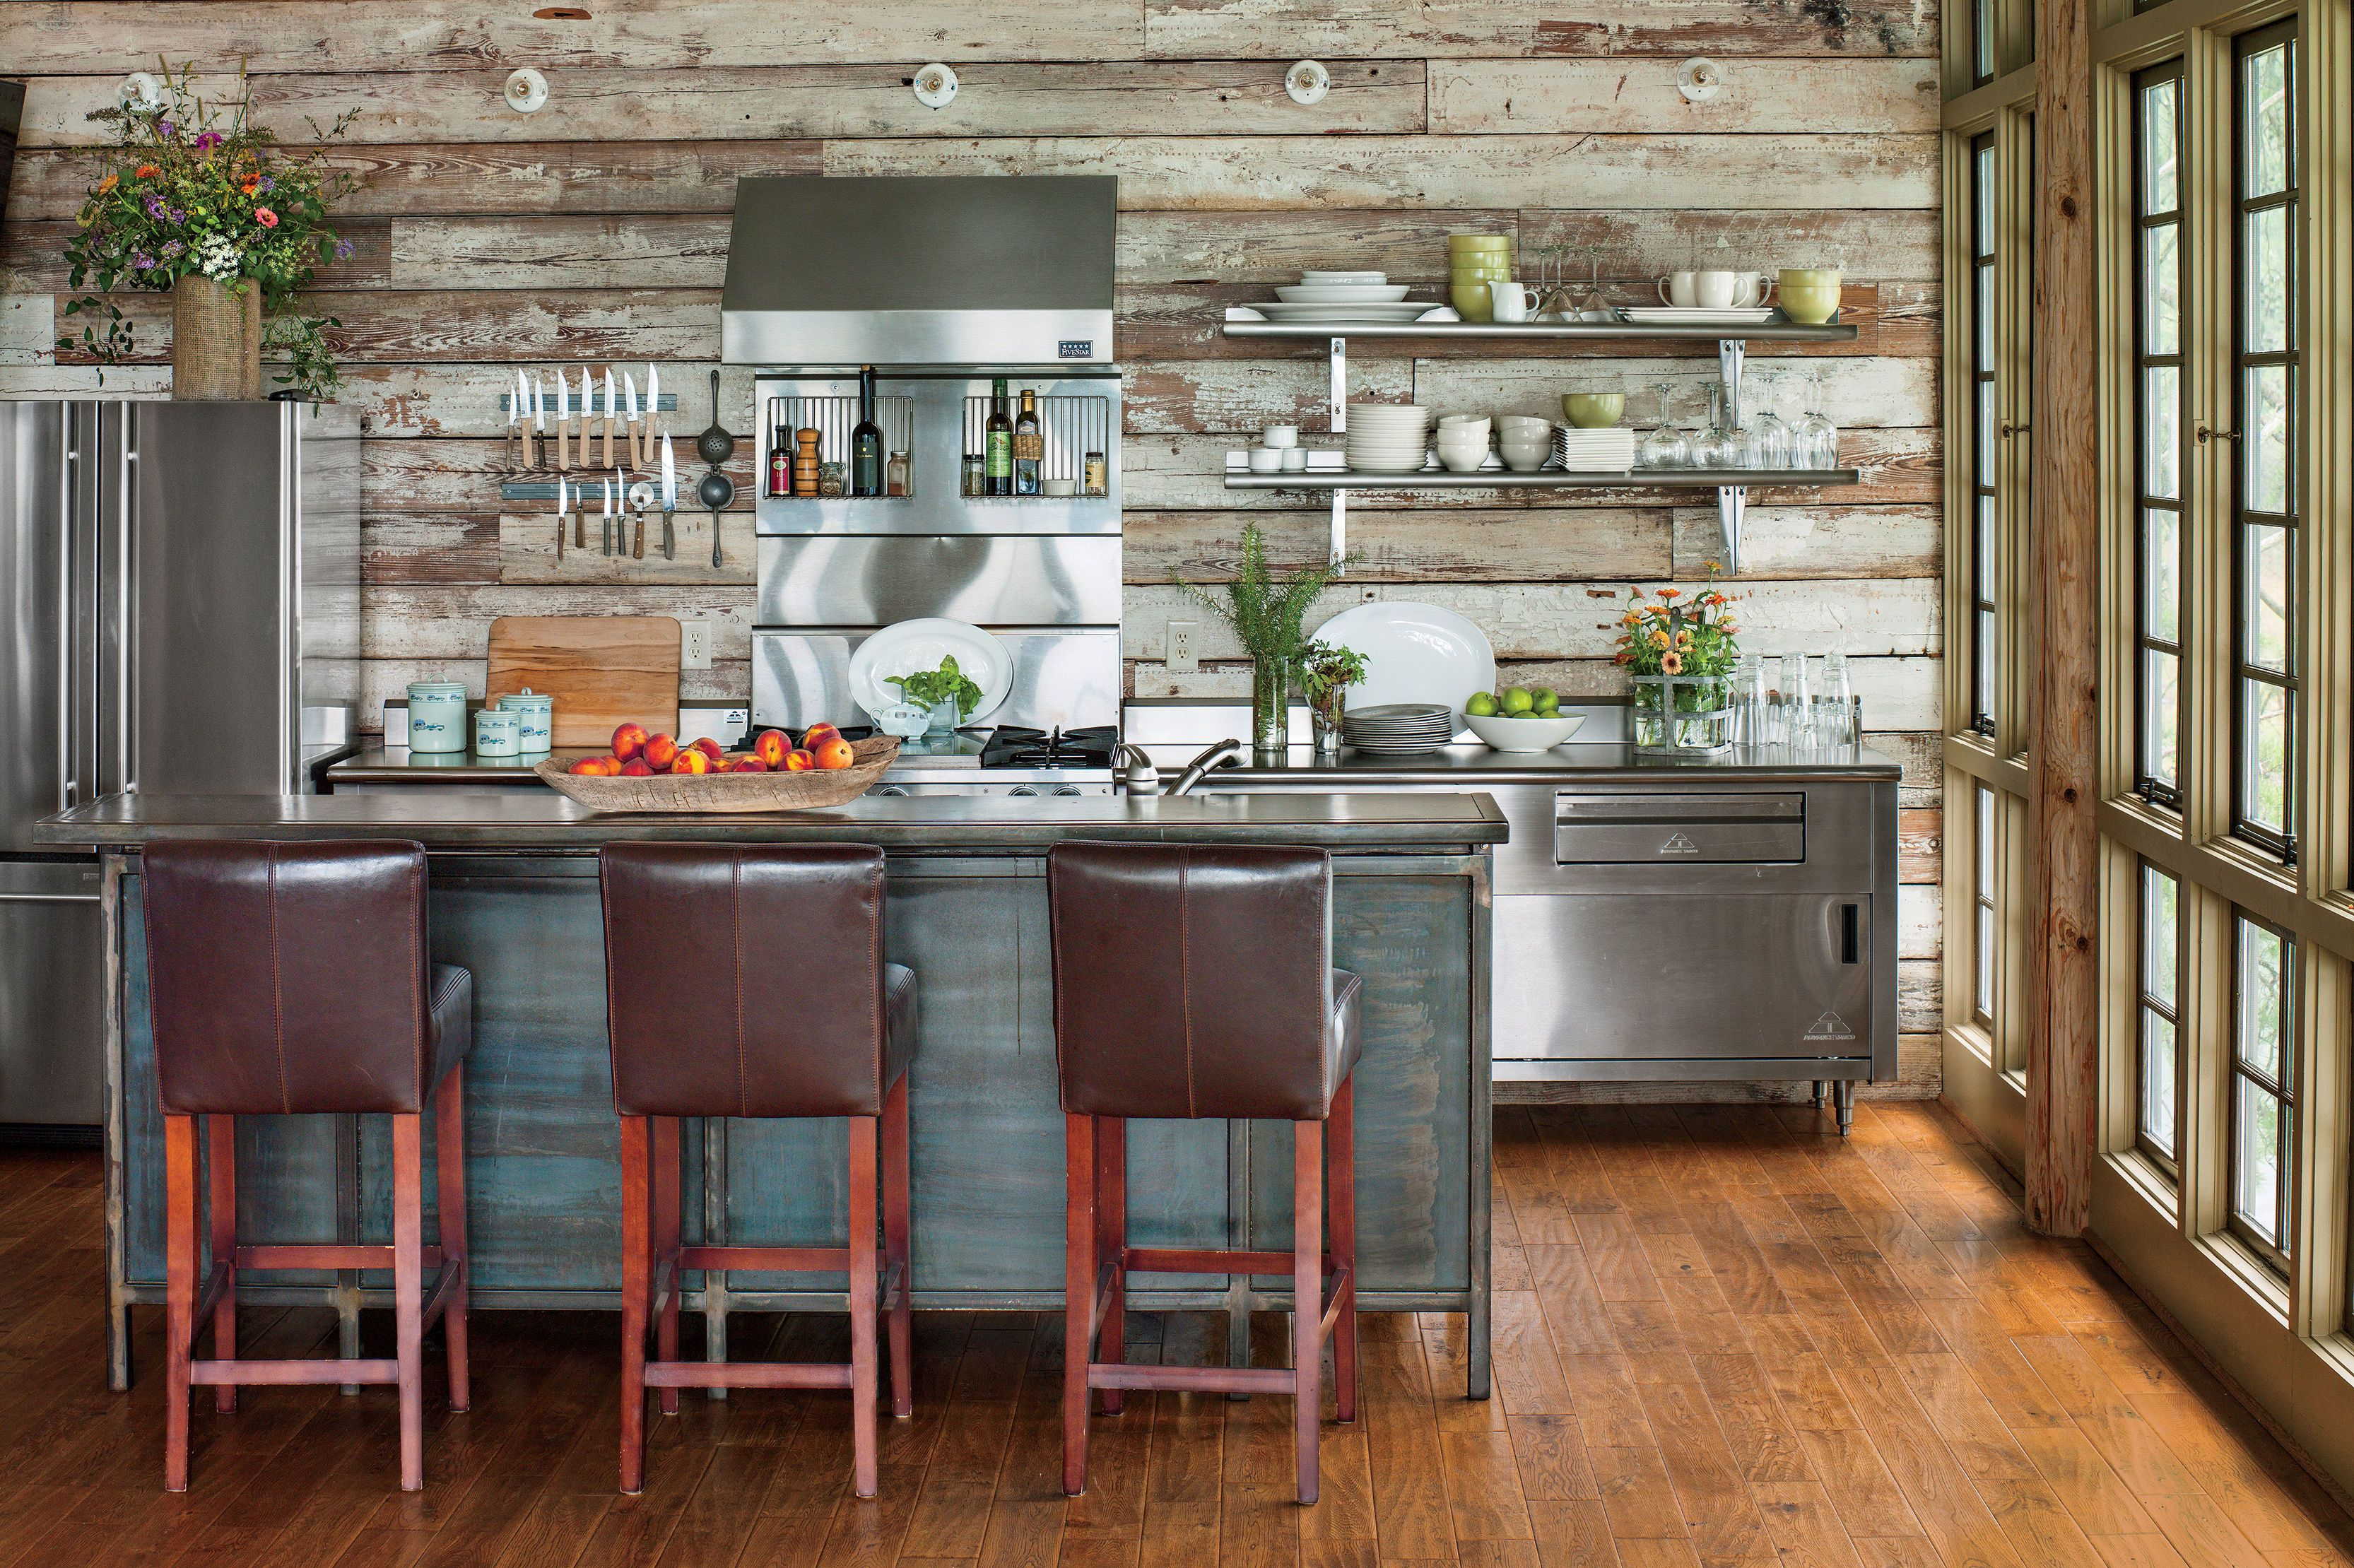 Lake House In The Trees Lake House Kitchen Rustic Kitchen Lakehouse Decor Lake house kitchen designs